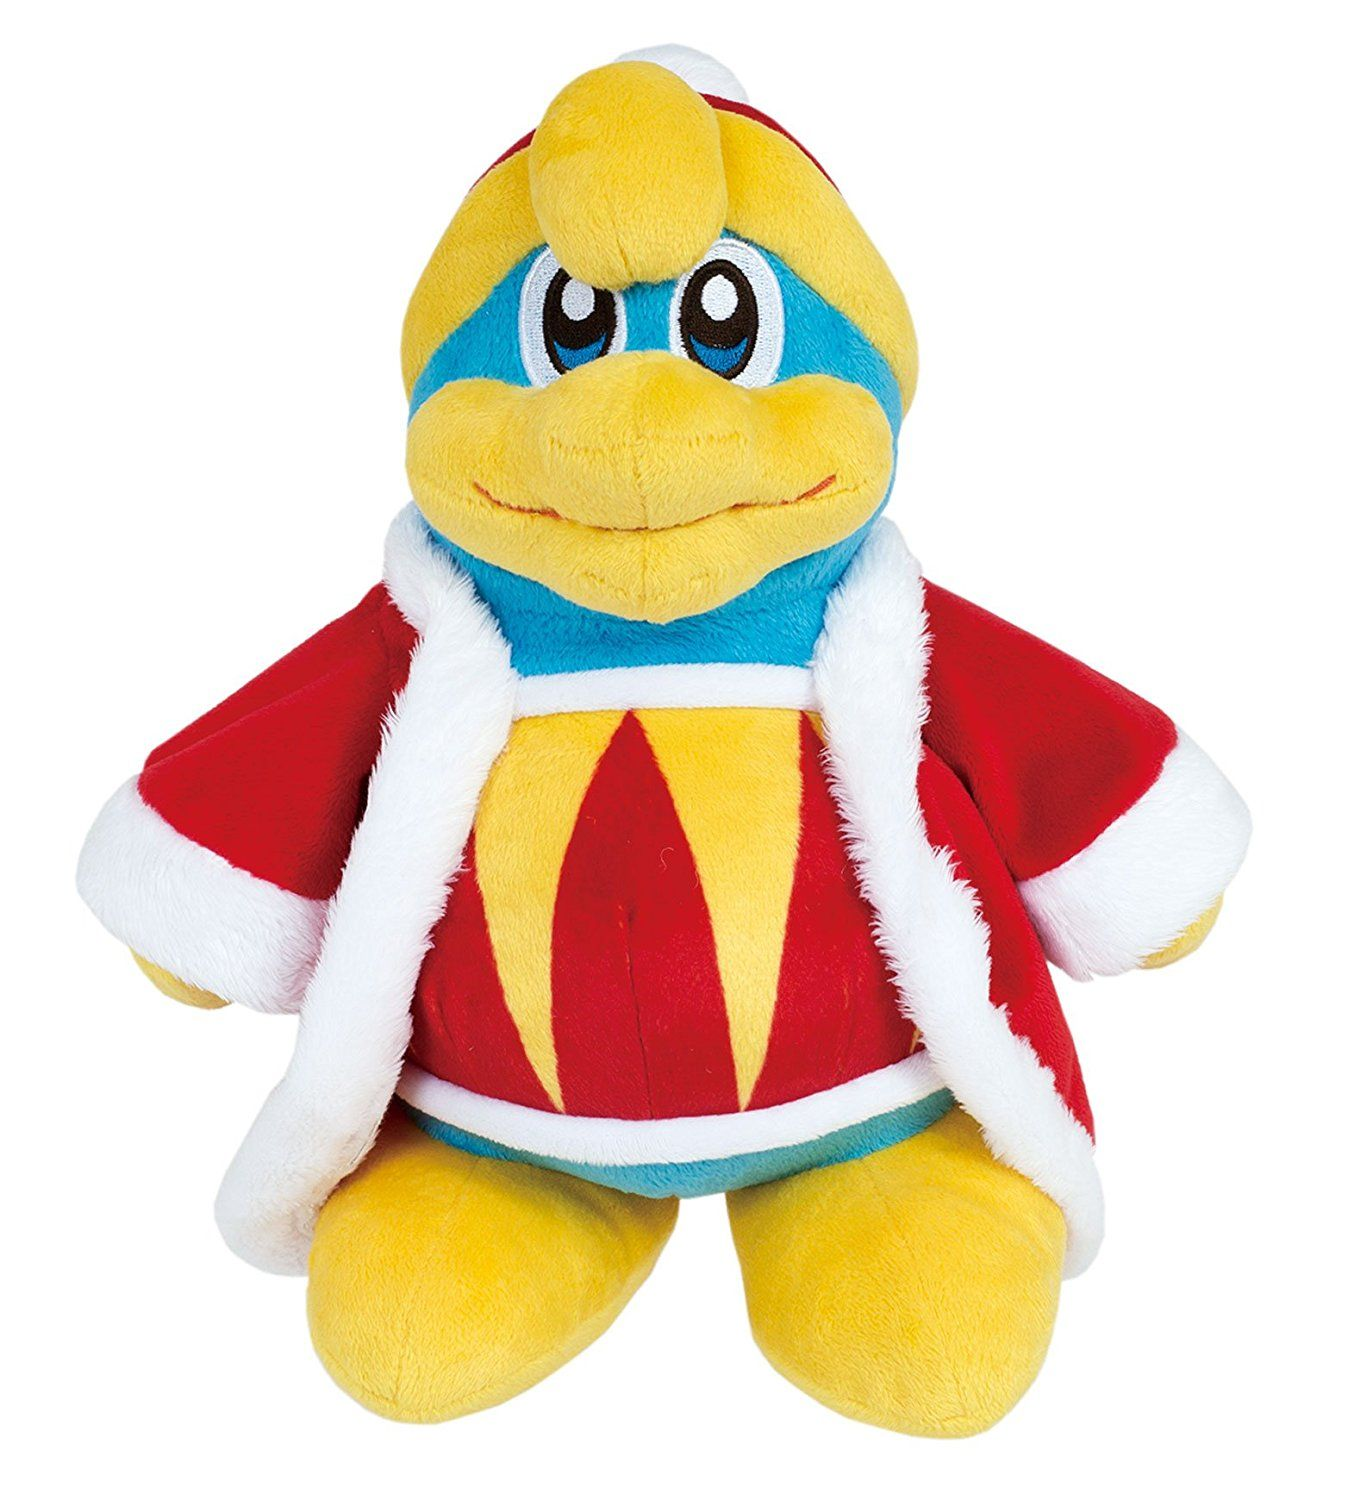 King Dedede Super Smash Bros Kirby Penguin Mario Plush Toy Stuffed Animal 10/""